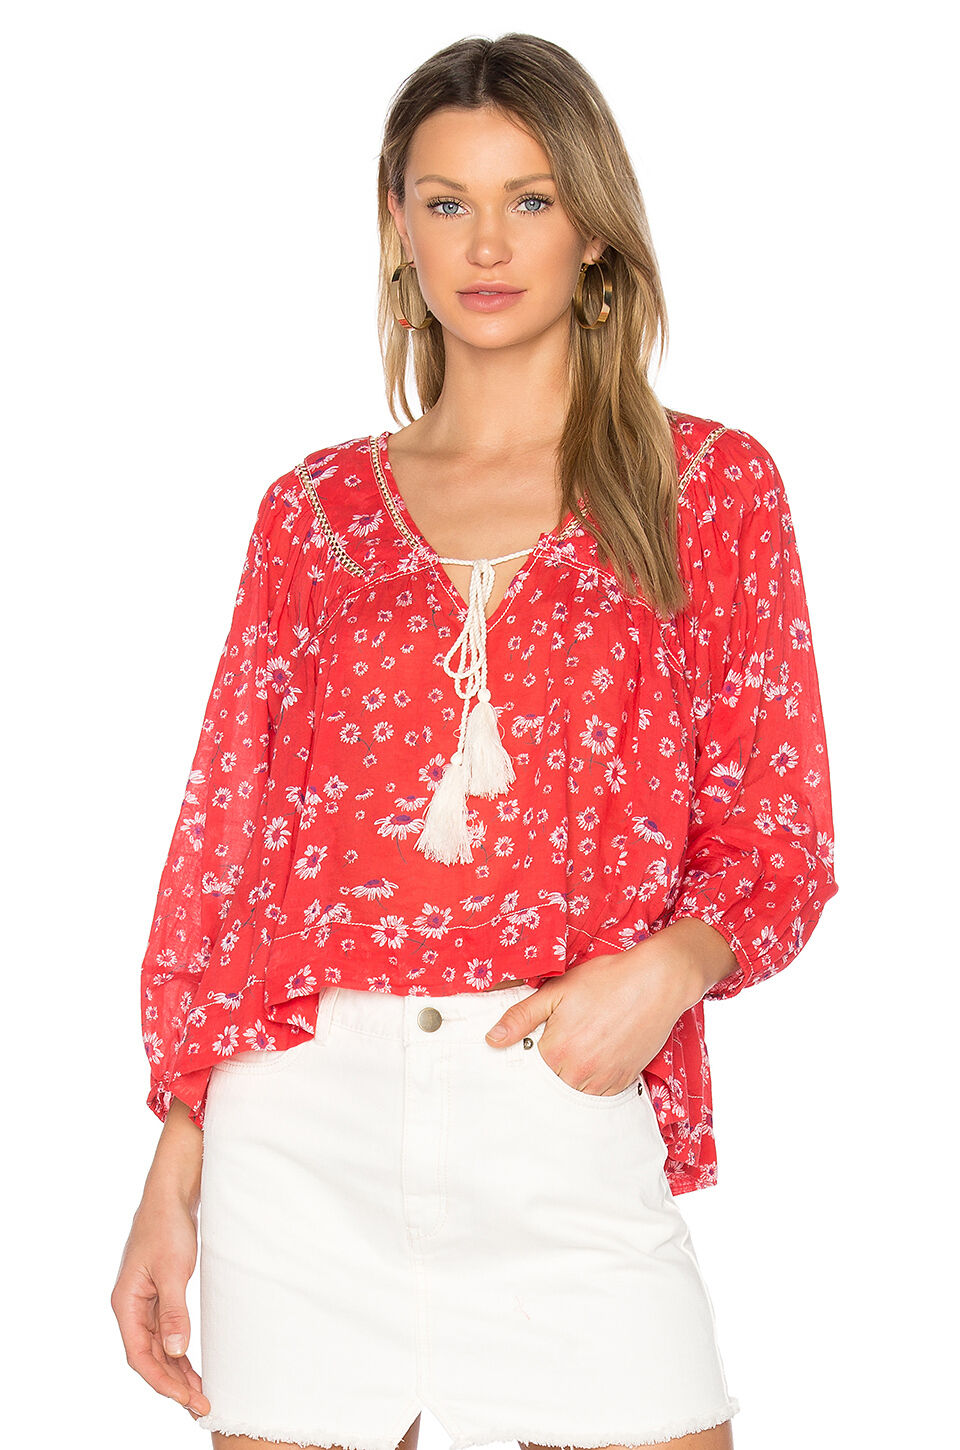 NWT Free people Never a Dull Moment Blouse Retail